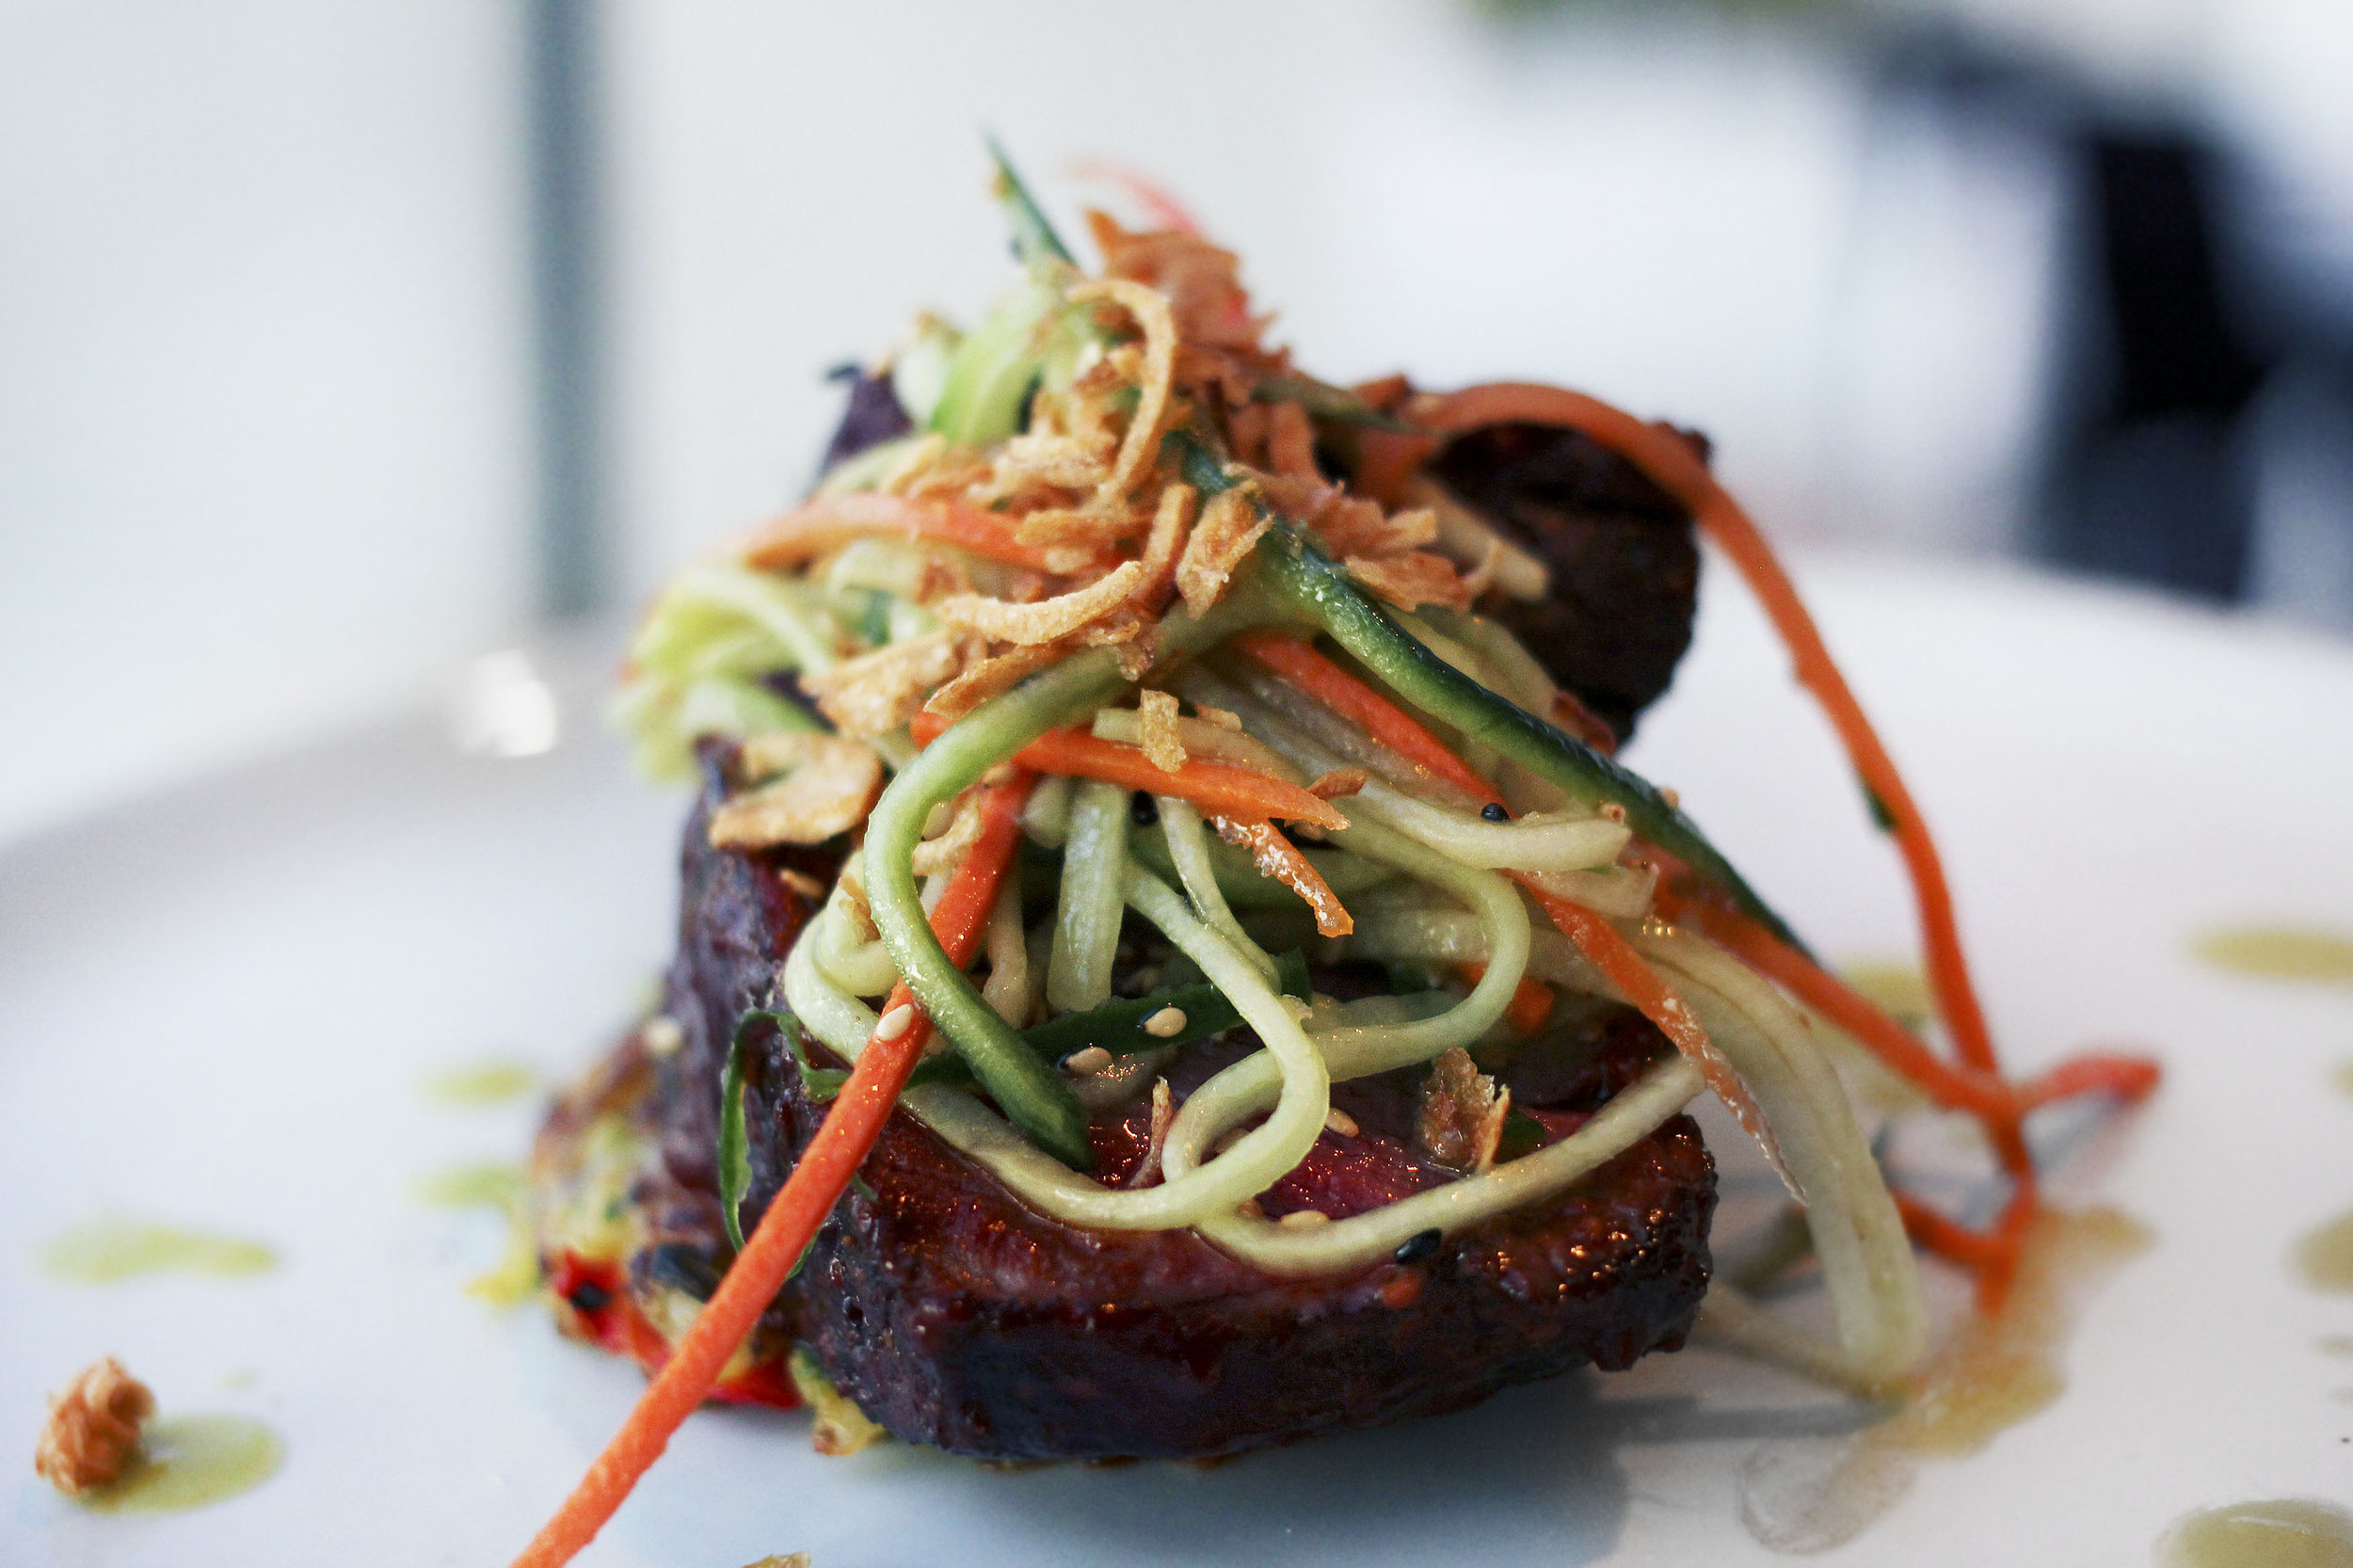 PRIME FILET OF BEEF - potato pancake, spicy sweet glaze, crispy onion, pickled vegetables.